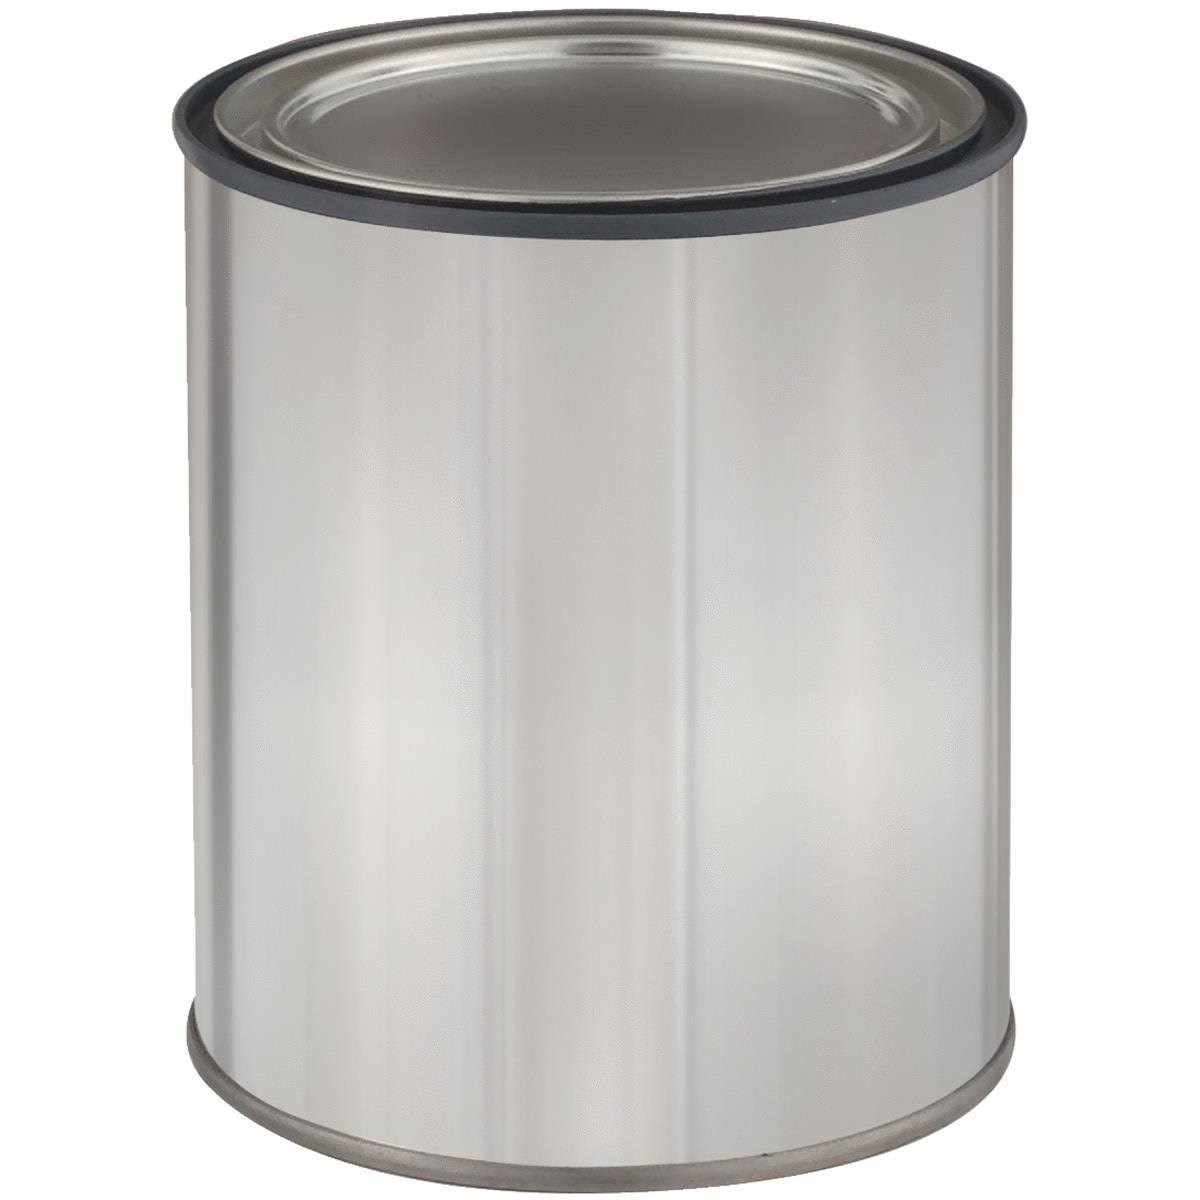 Valspar Empty Paint Can - 1 Quart